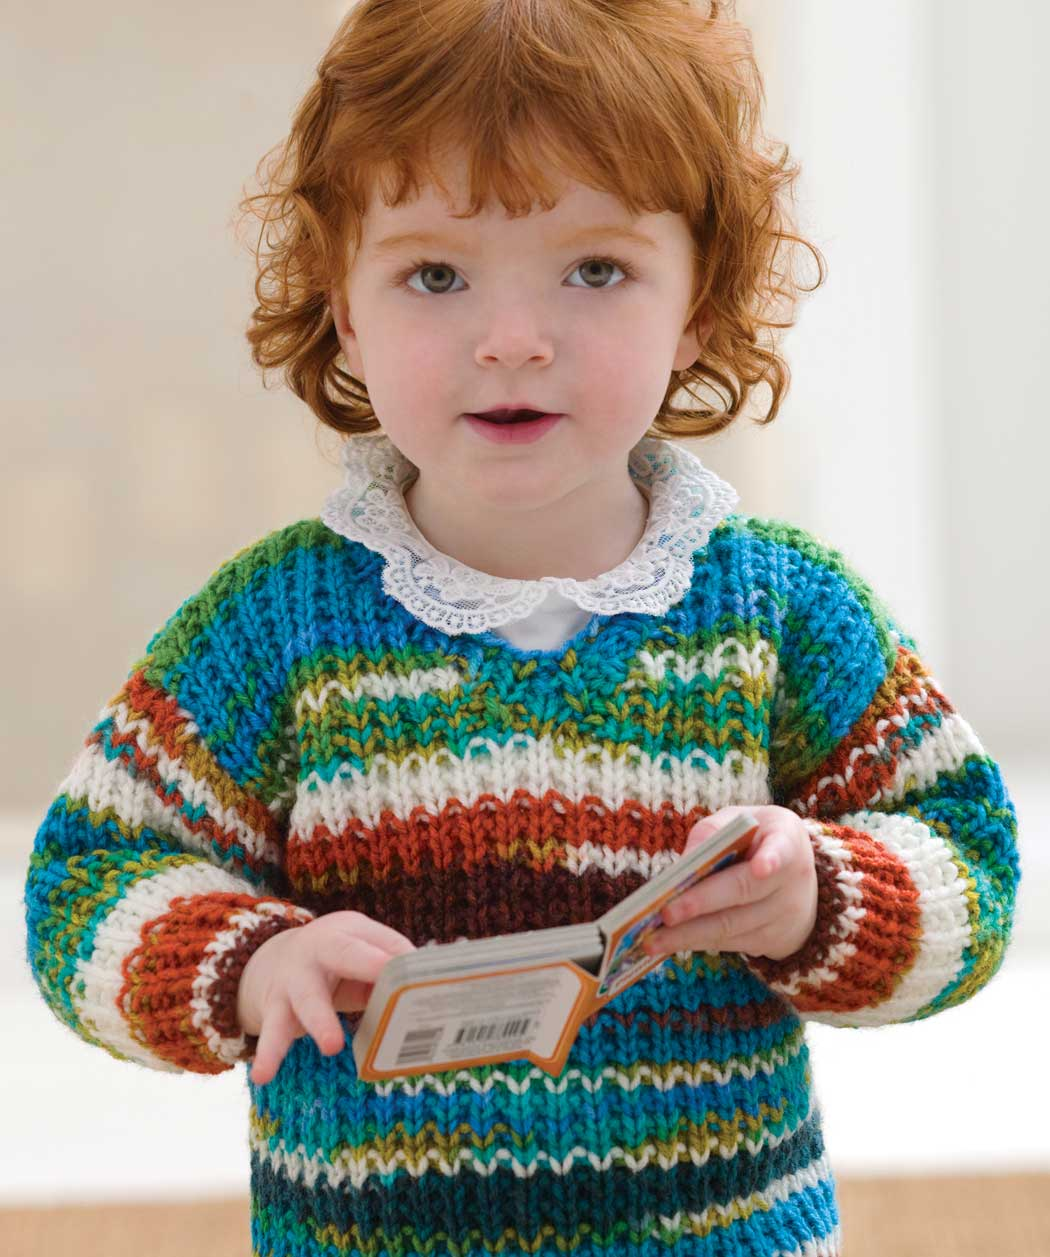 Knitting Pattern Baby Sweater Chunky Yarn : Knit Sweater Patterns Chunky Yarn - Long Sweater Jacket